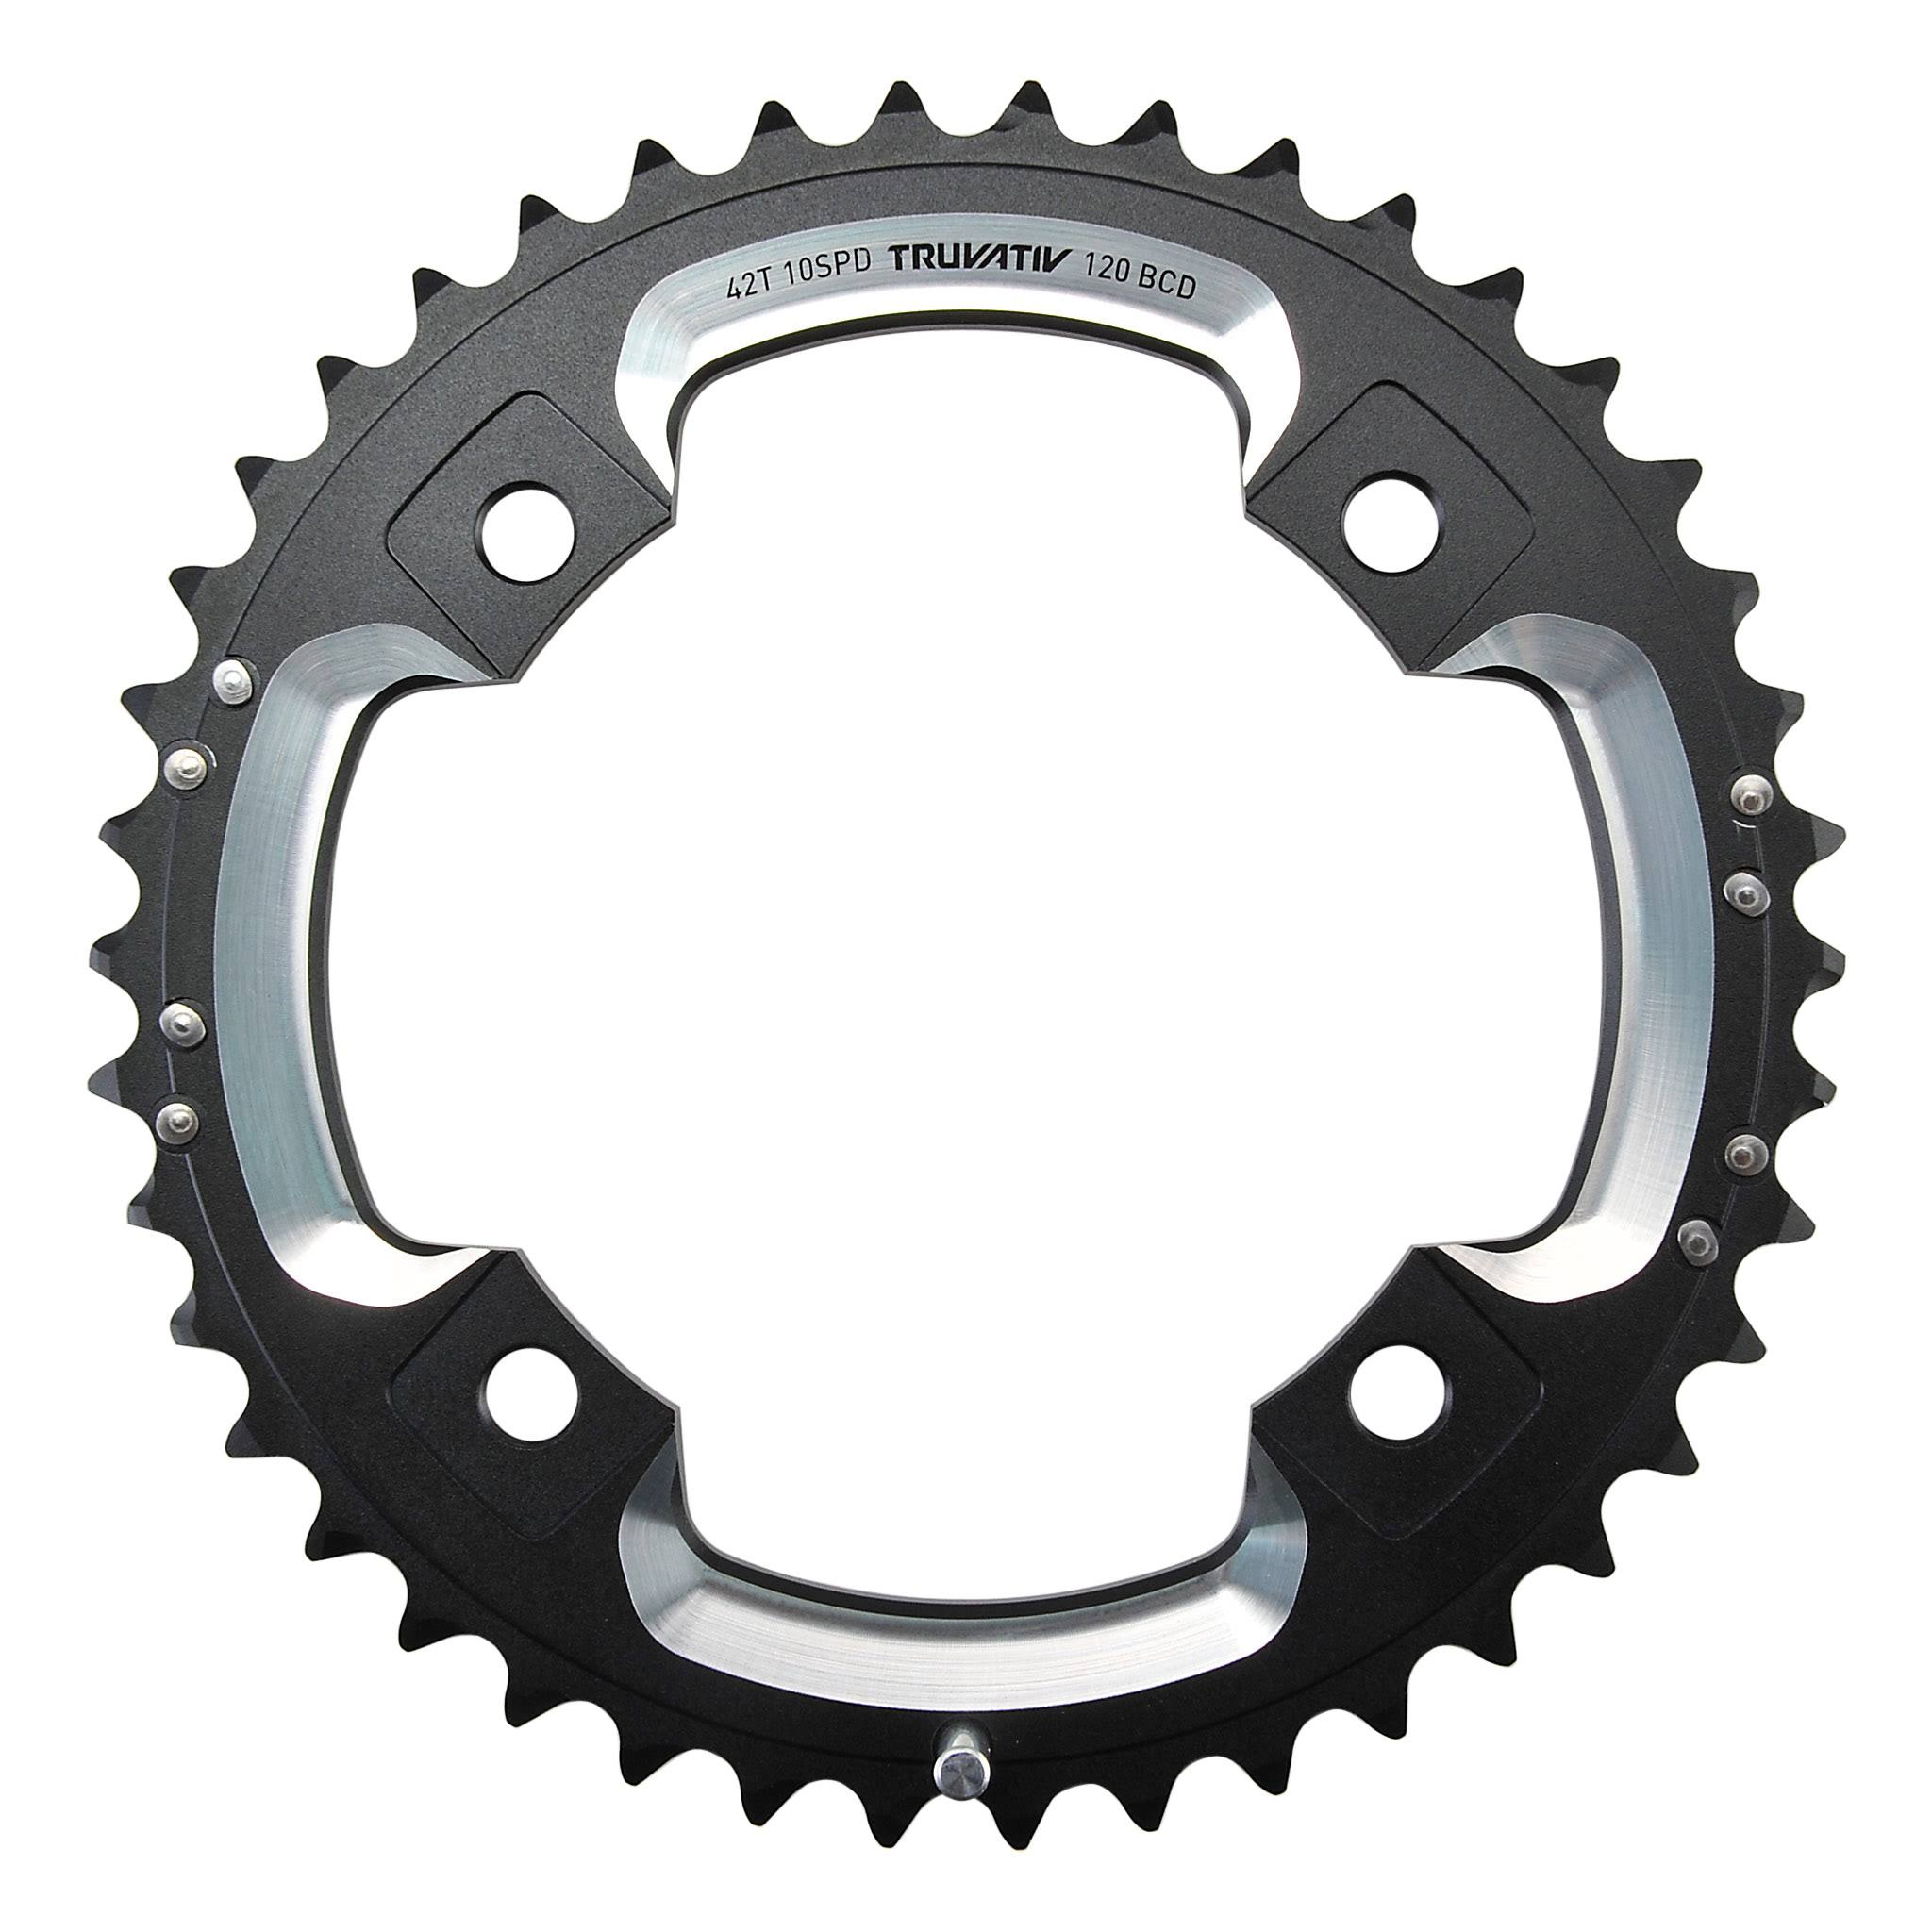 Sram Truvativ Bike Chainring - Black, 120BCD X 42T